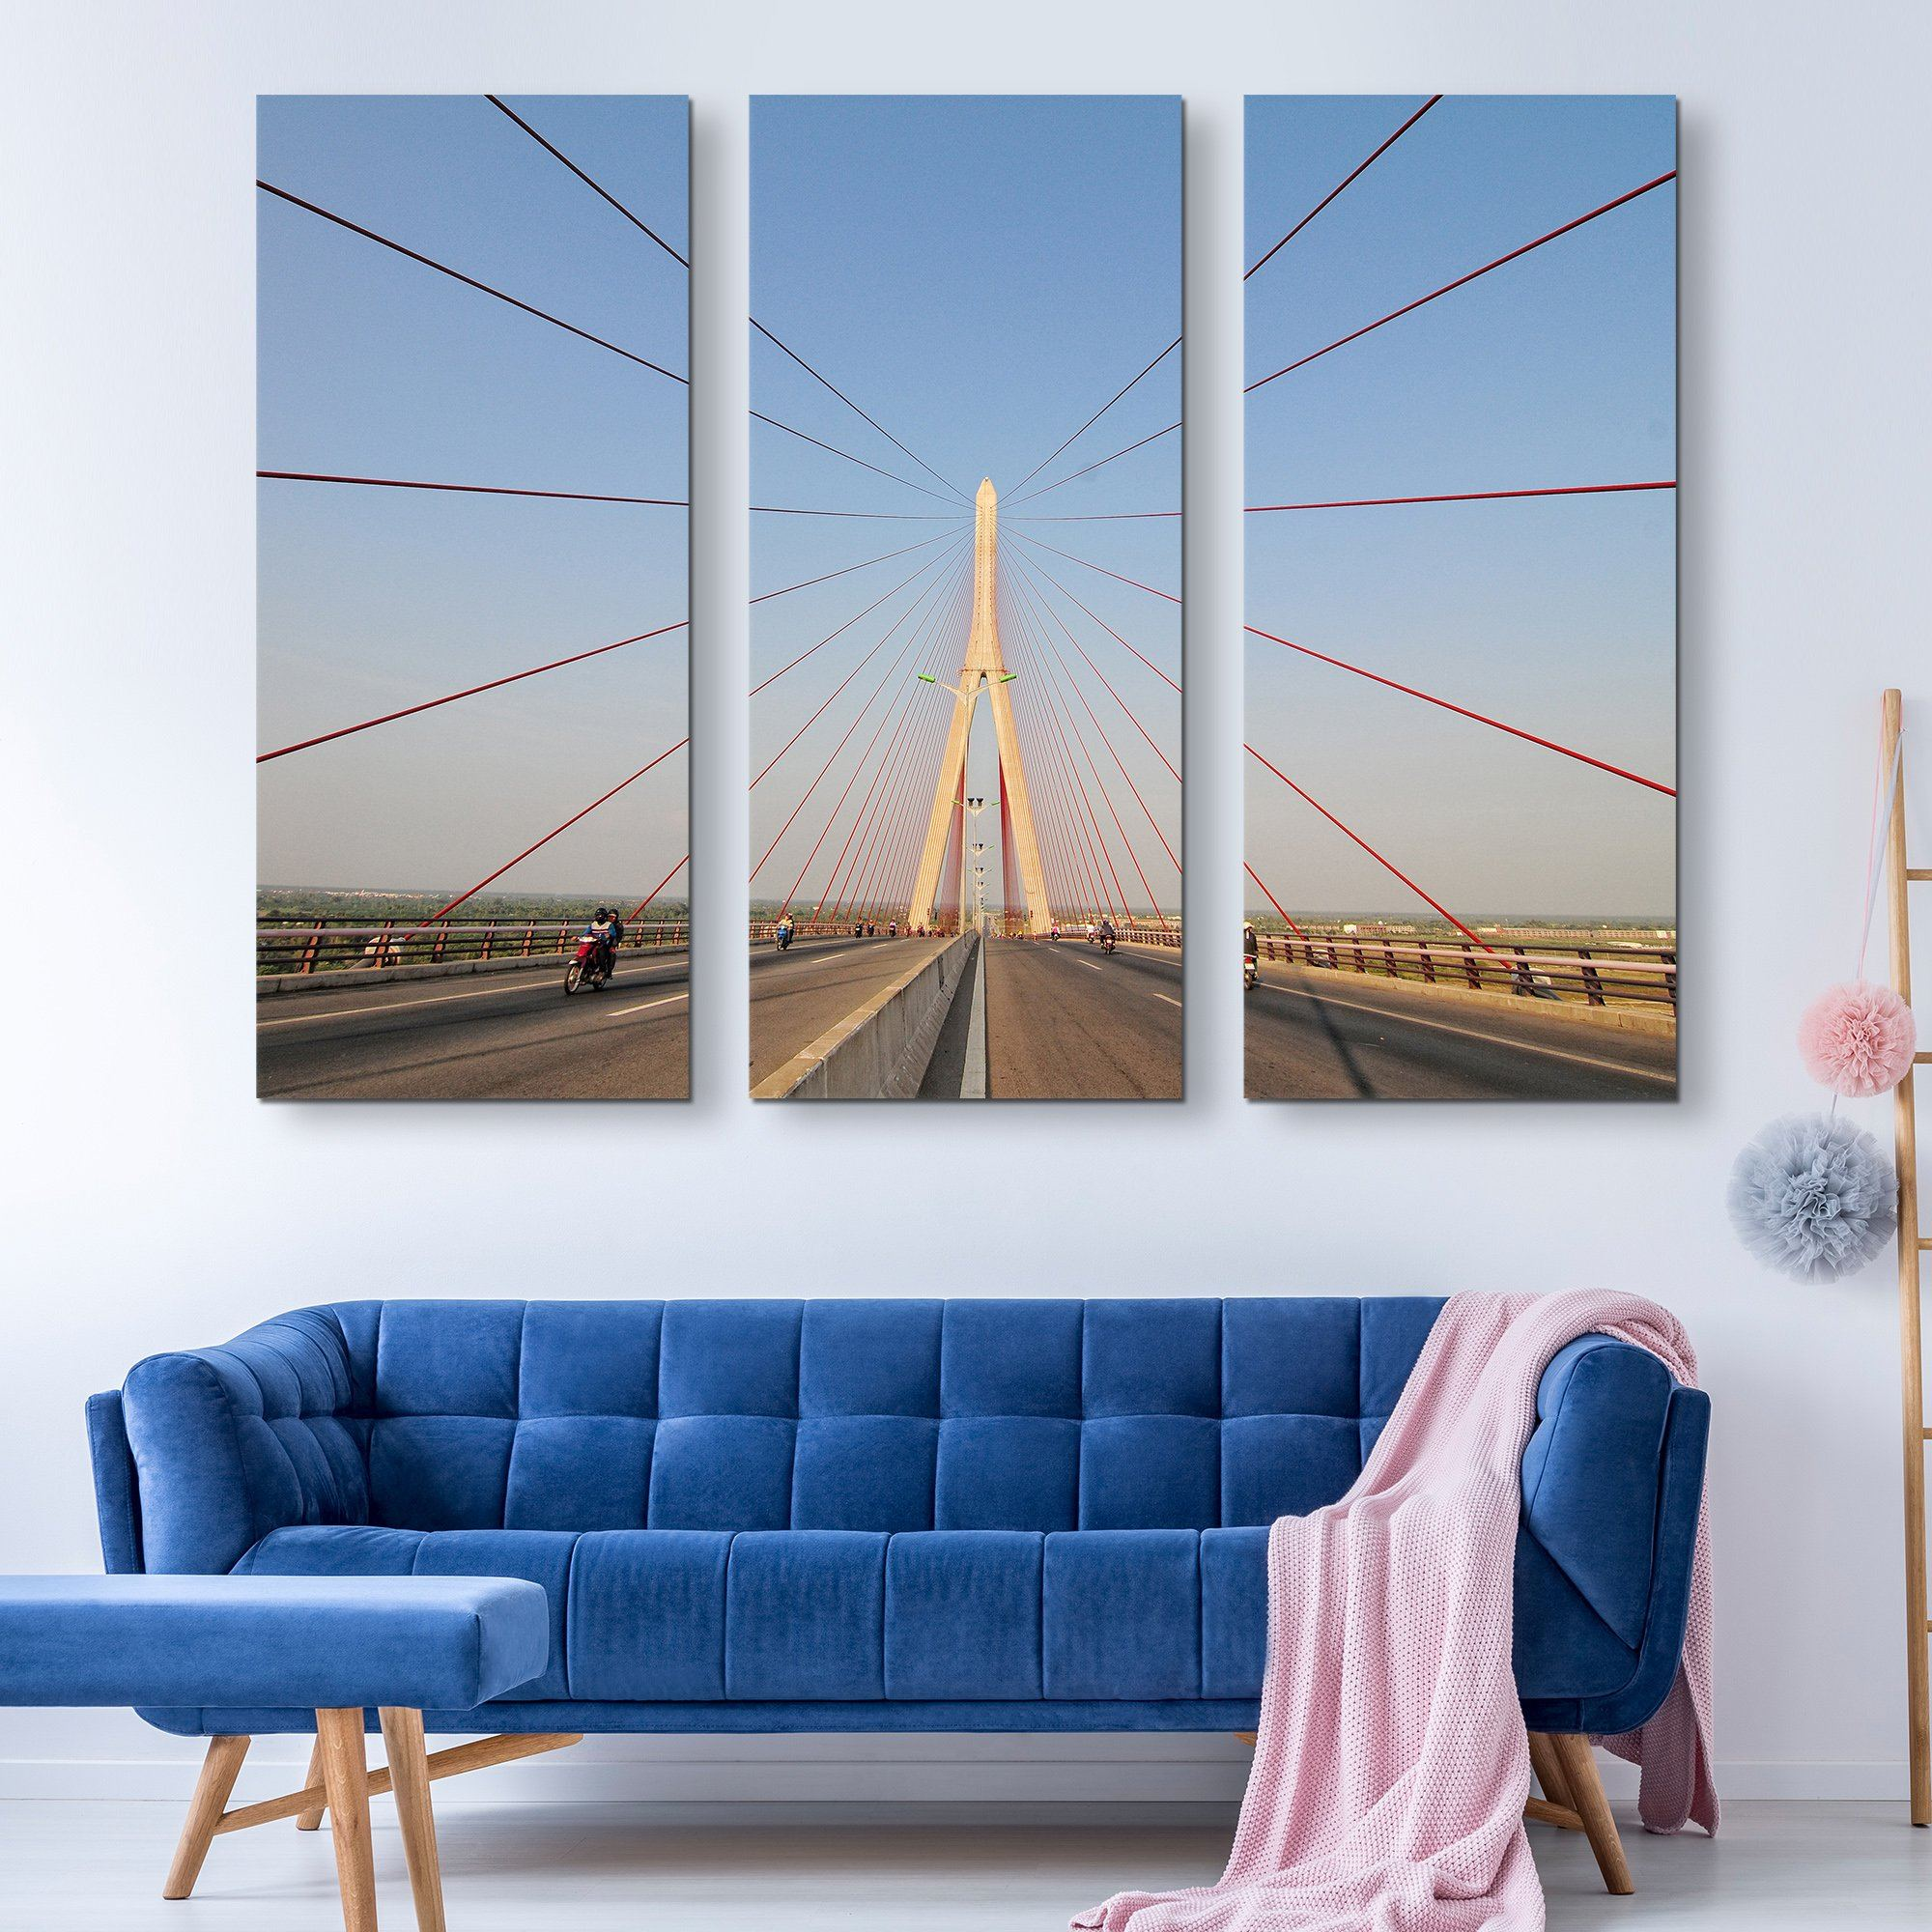 3 piece Structural Bridge wall art